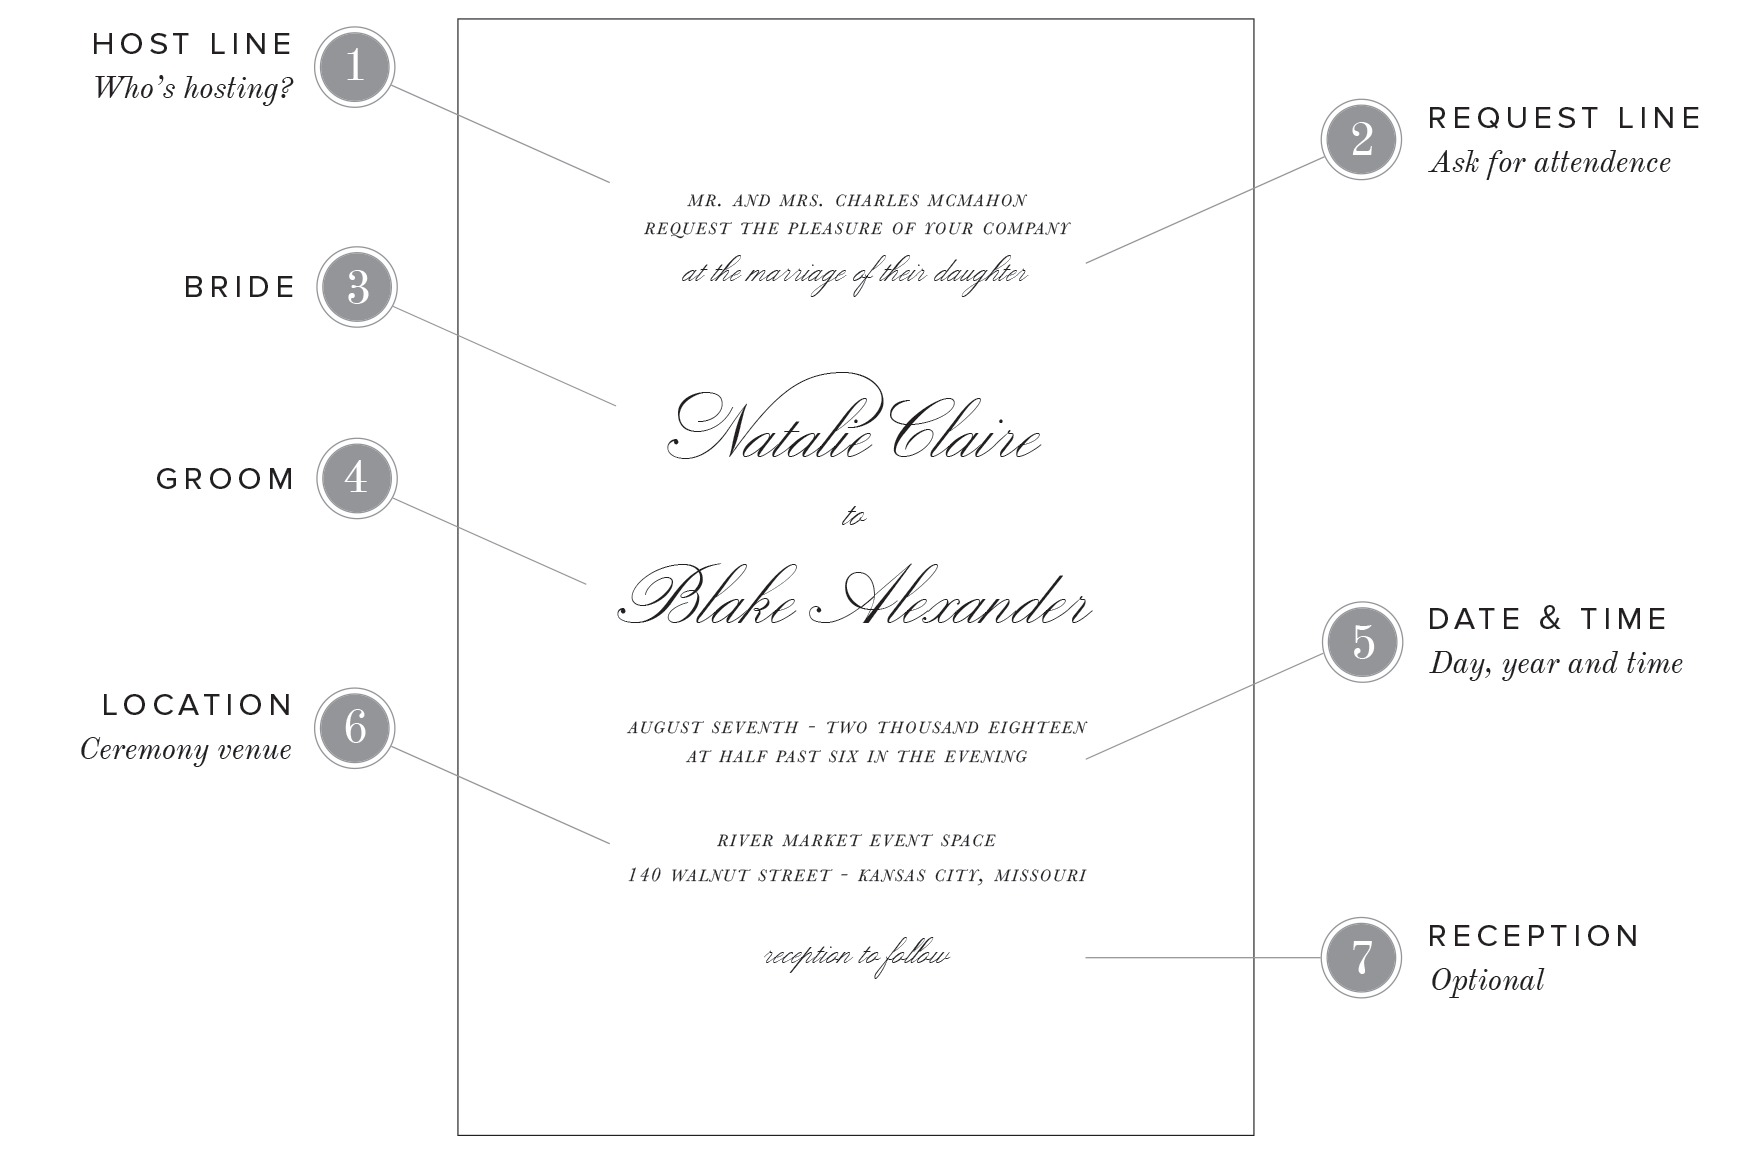 wedding invitation wording wedding invitation wording examples shine wedding invitations,Examples Of Wording For Wedding Invitations